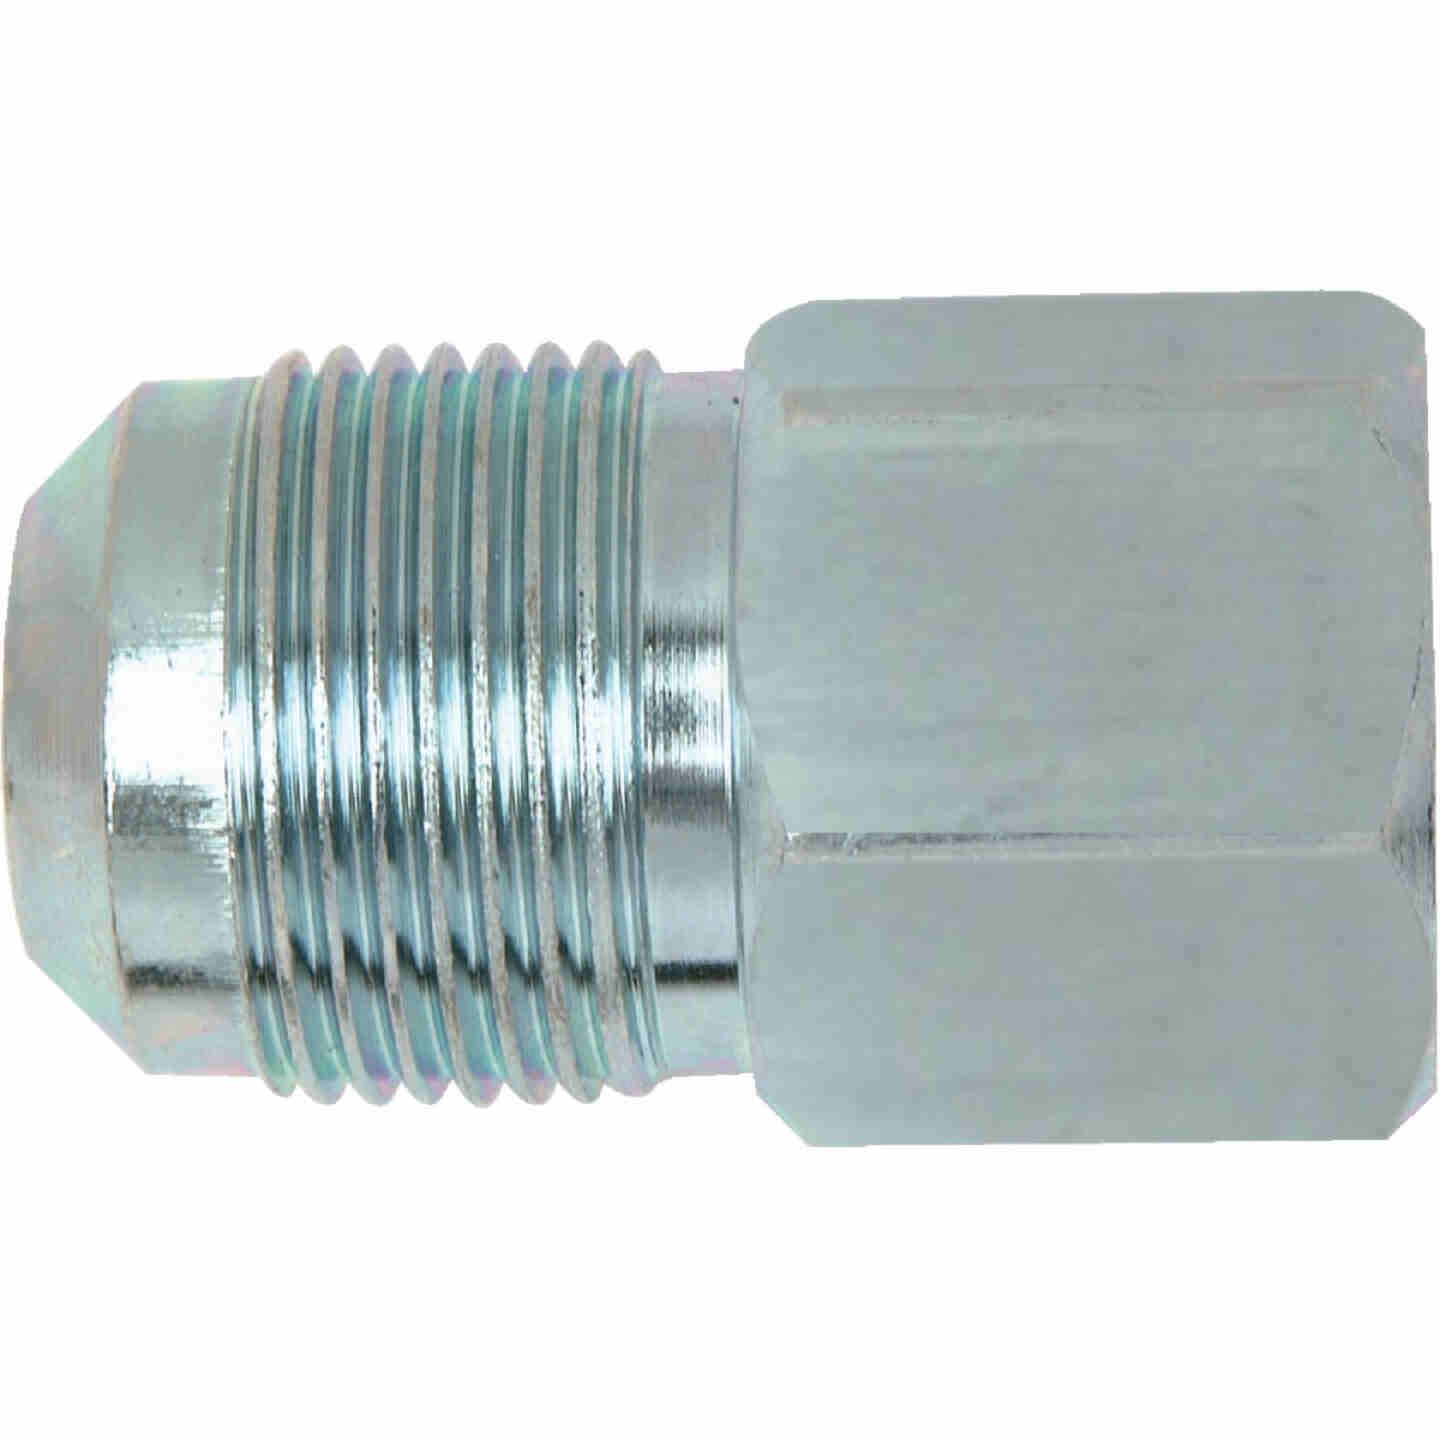 Dormont 5/8 In. OD Flare x 1/2 In. FIP Brass Adapter Gas Fitting Image 1